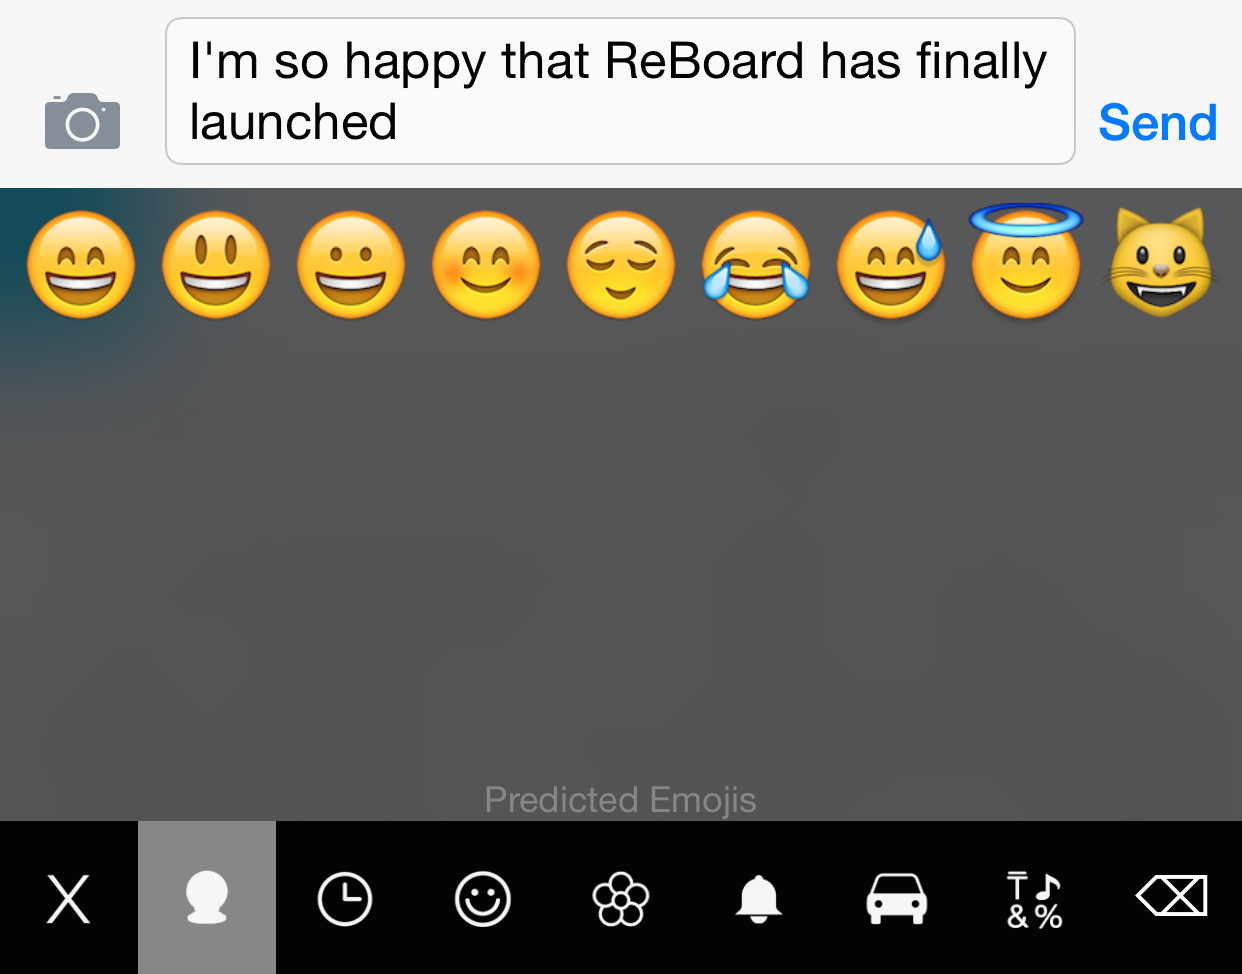 ReBoard Keyboard 1.0 for iOS iPhone screenshot 006